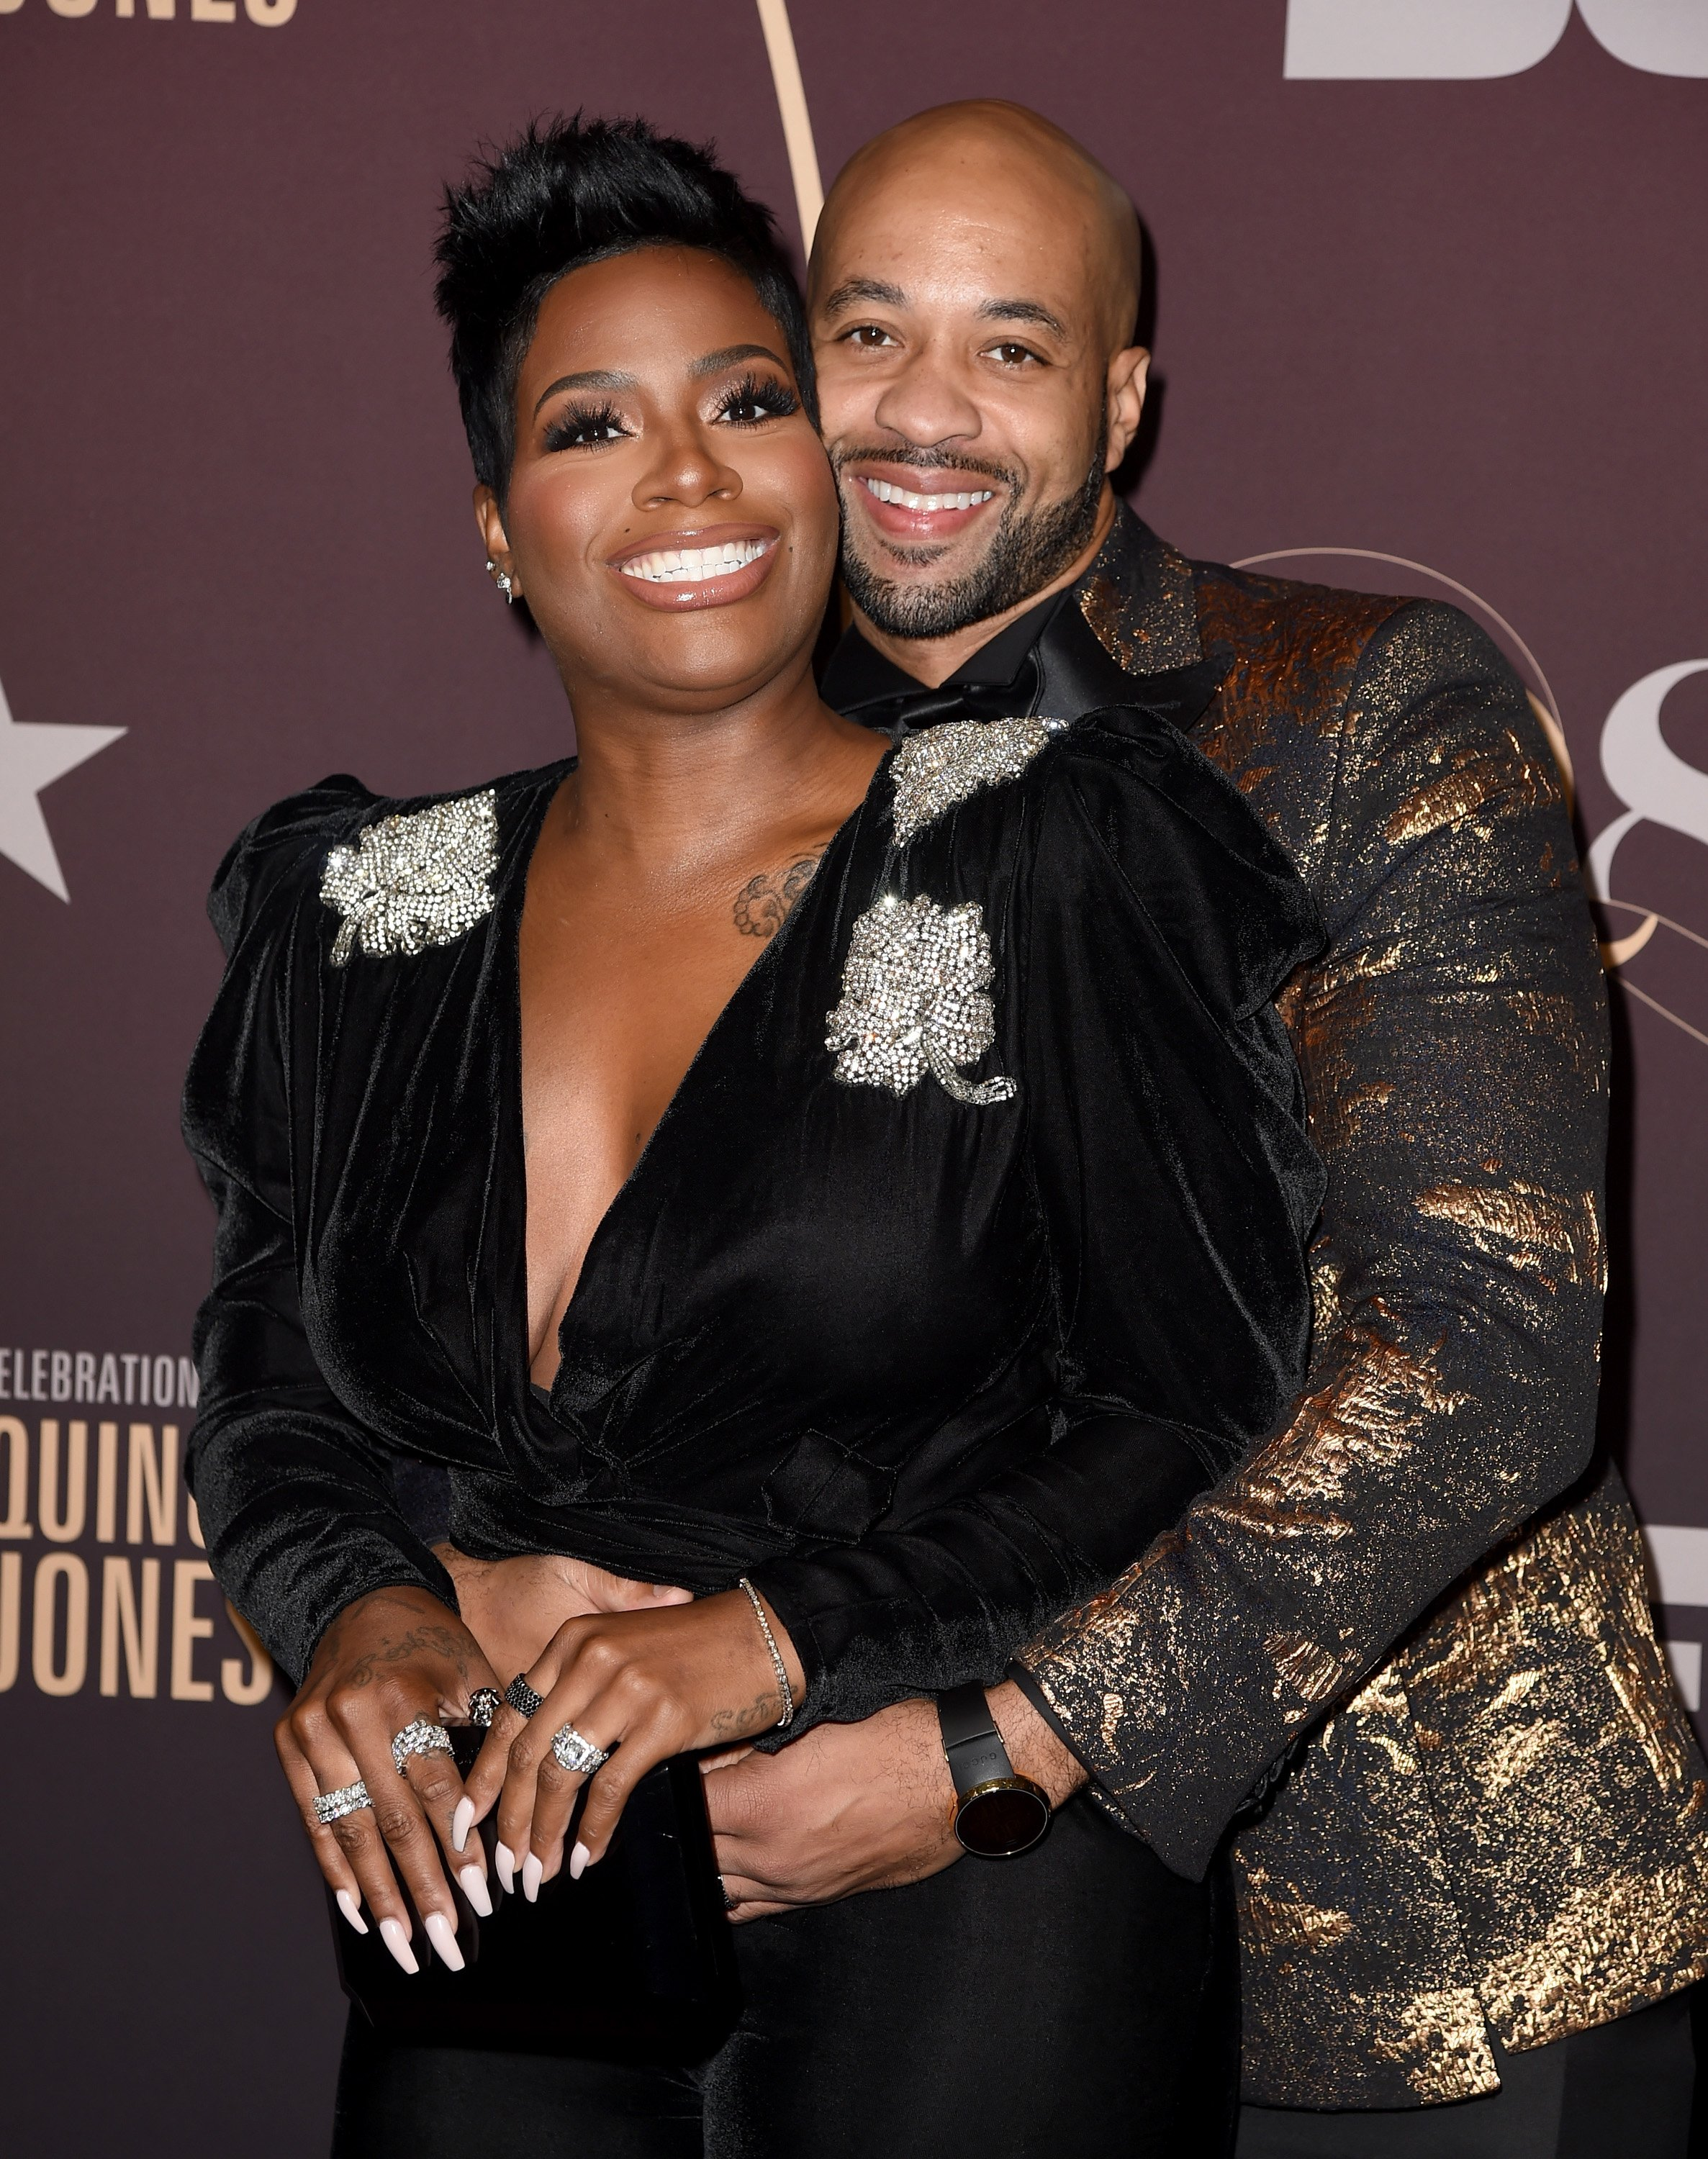 Fantasia Barrino and Kendall Taylor at the Q85: A Musical Celebration for Quincy Jones in Los Angeles, California, in September 2018.   Photo: Getty Images